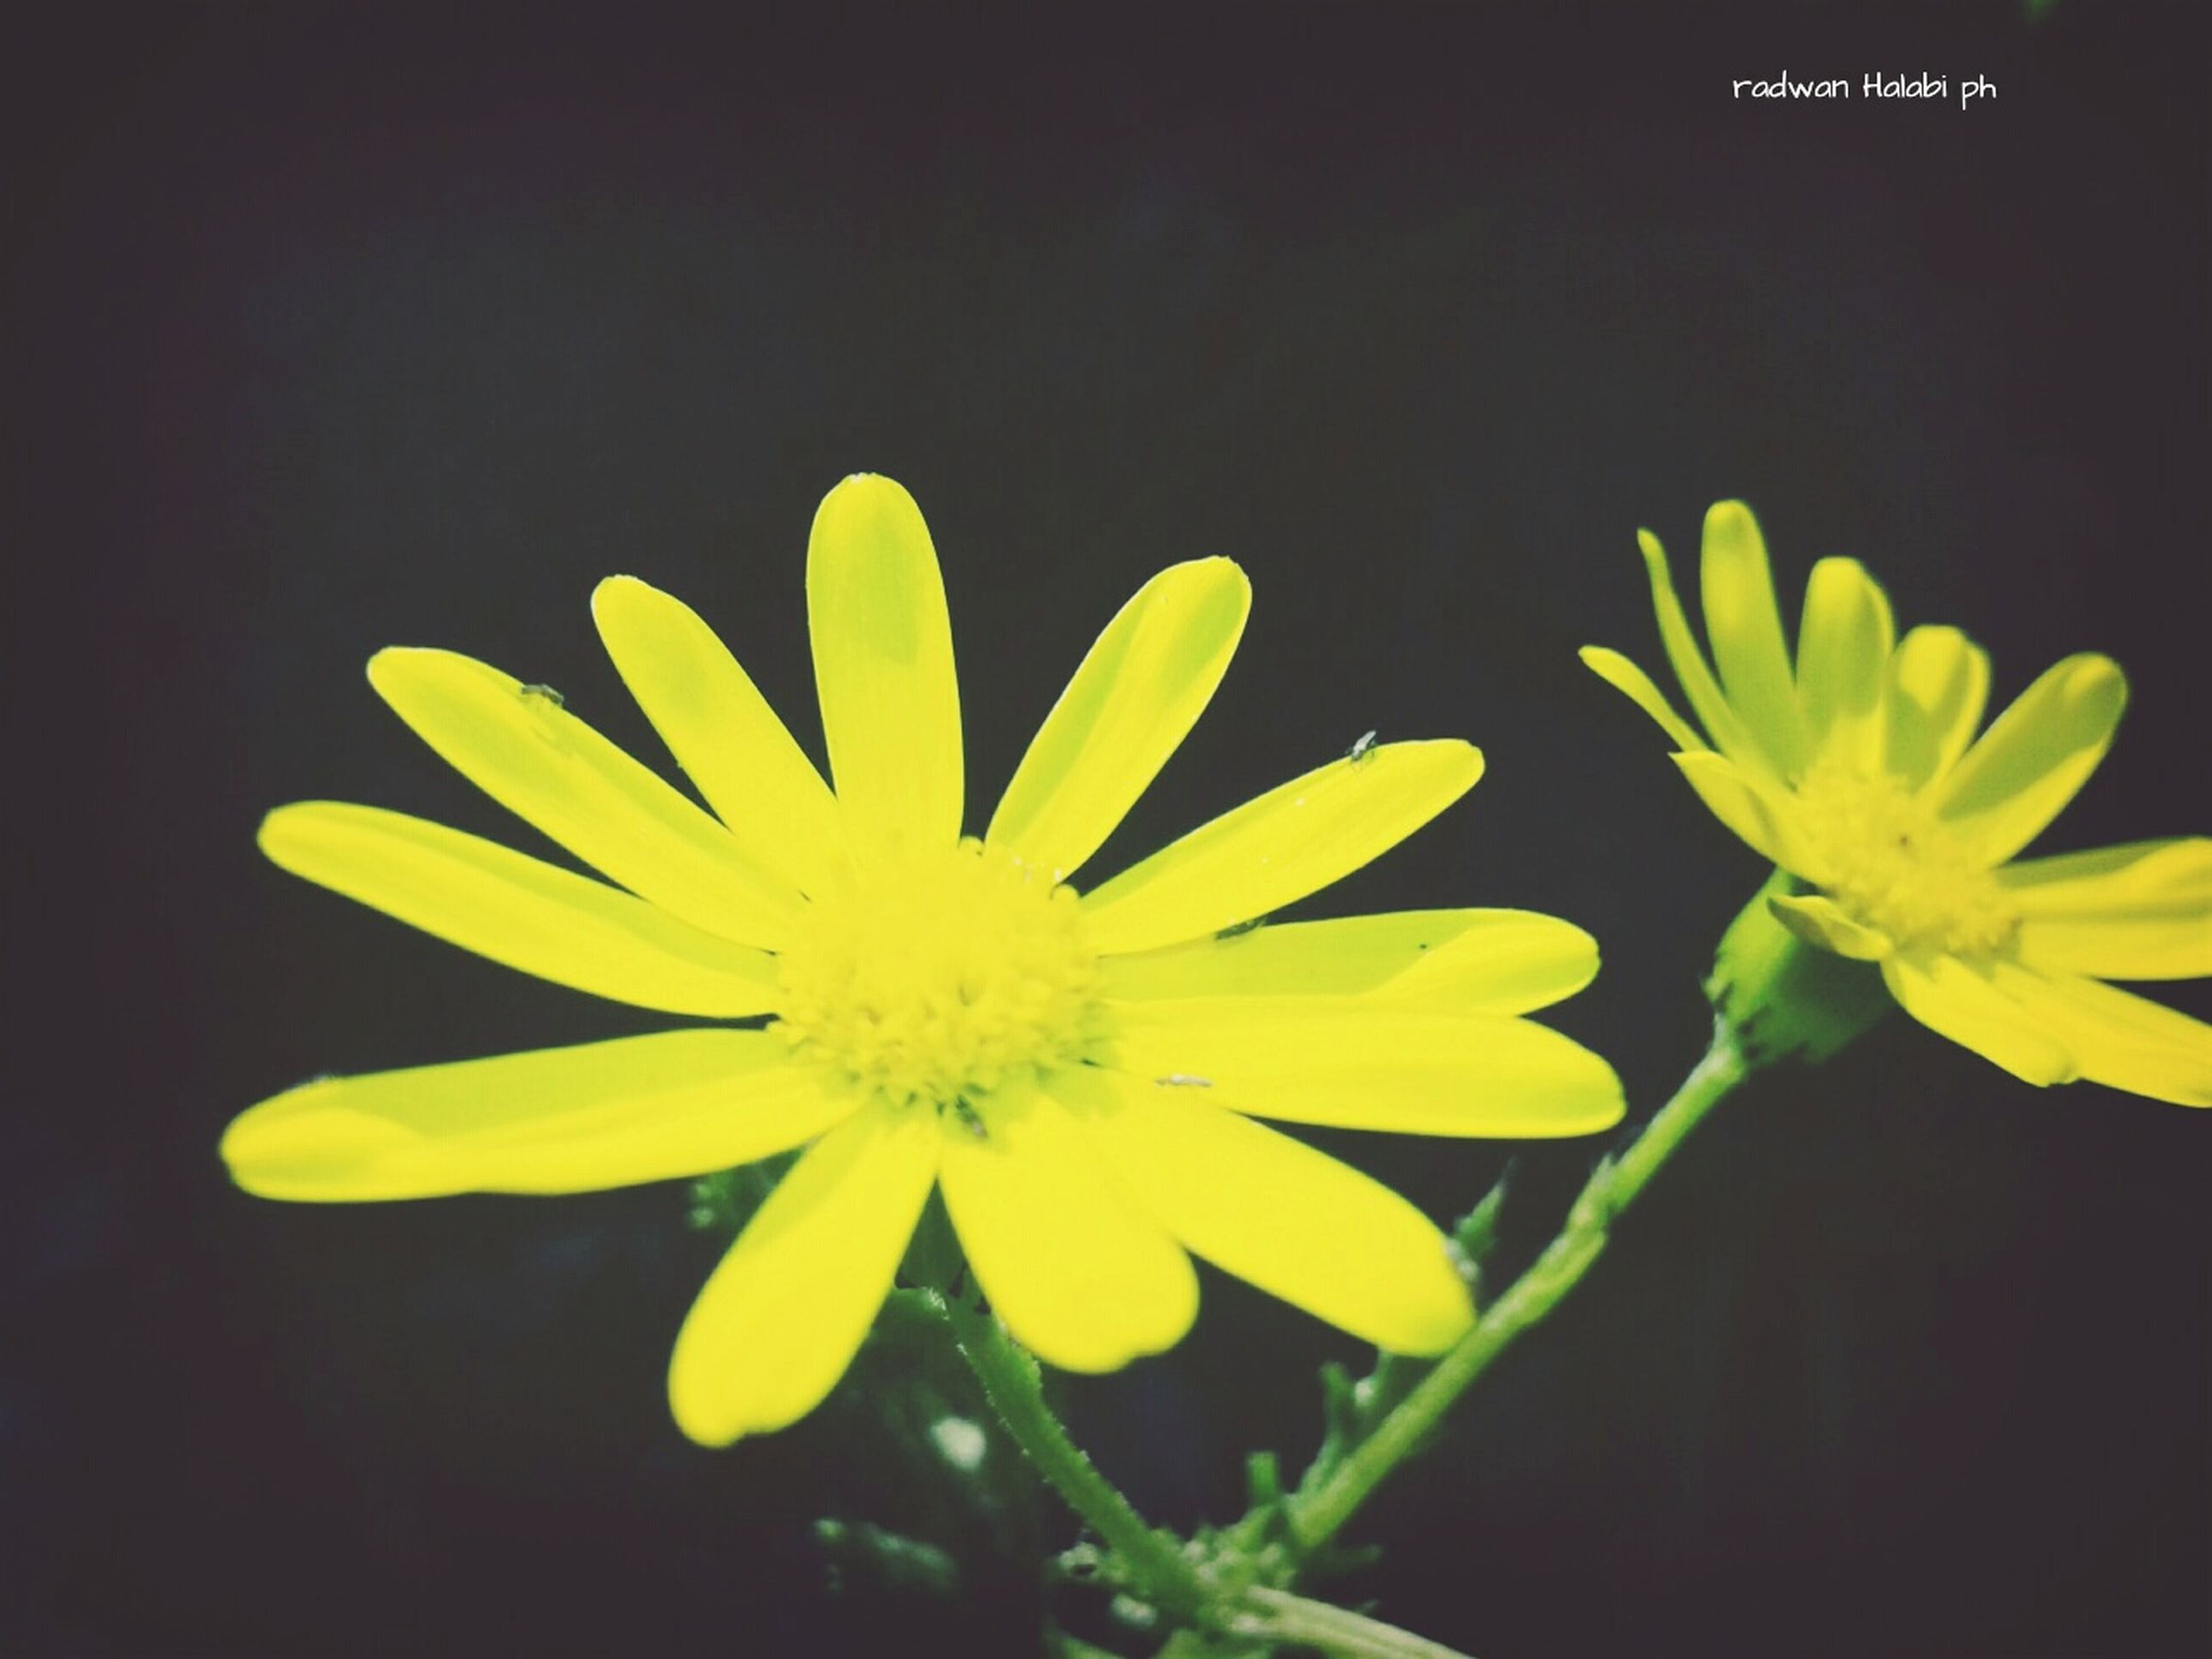 flower, petal, freshness, yellow, fragility, flower head, beauty in nature, growth, close-up, blooming, nature, plant, black background, single flower, pollen, studio shot, in bloom, focus on foreground, no people, blossom